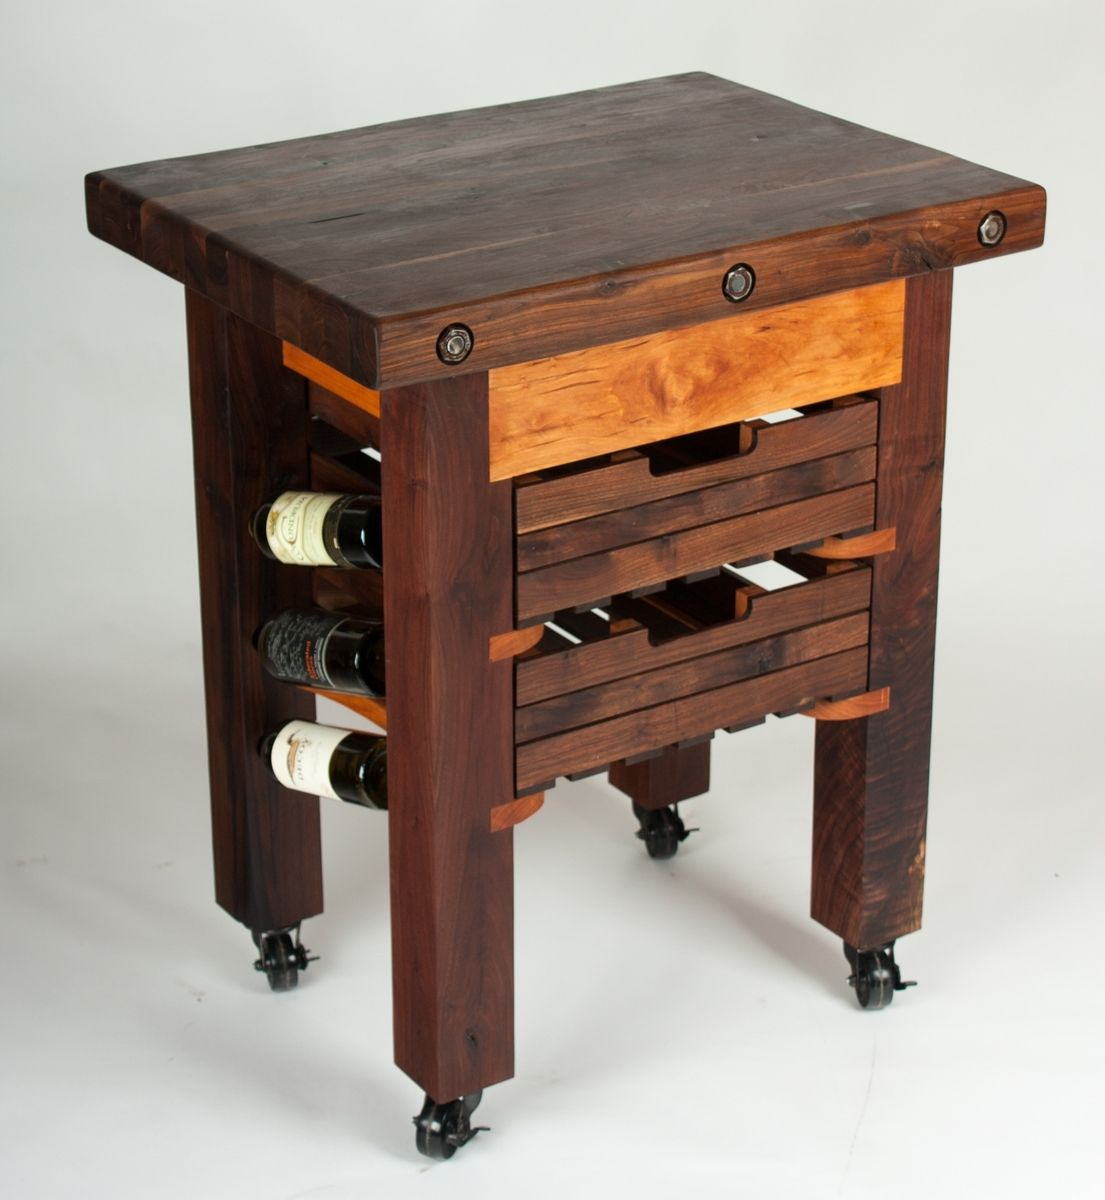 hand made walnut and cherry butcher block island wine rack by walnut wood works. Black Bedroom Furniture Sets. Home Design Ideas